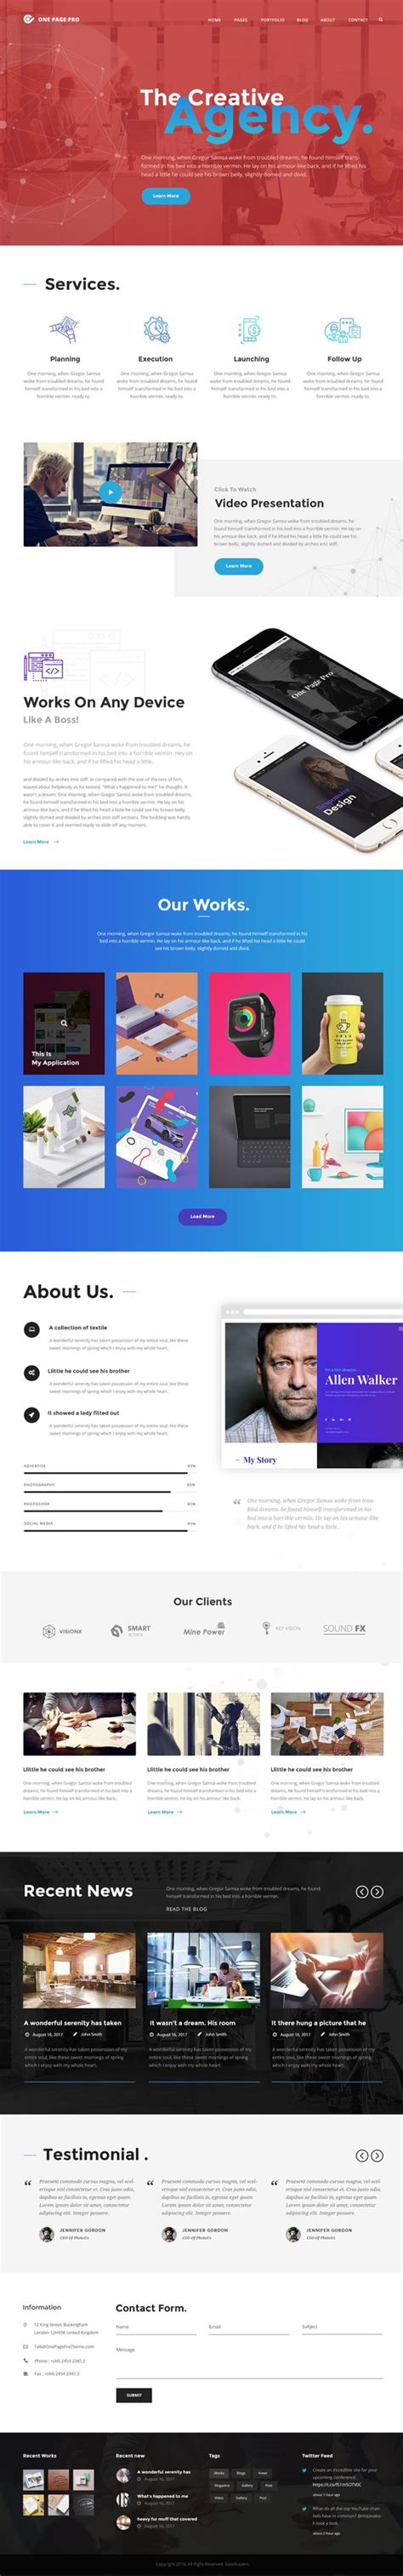 One Page Pro Multi Purpose Onepage Theme V1 0 2 50 best themes of 2017 idevie